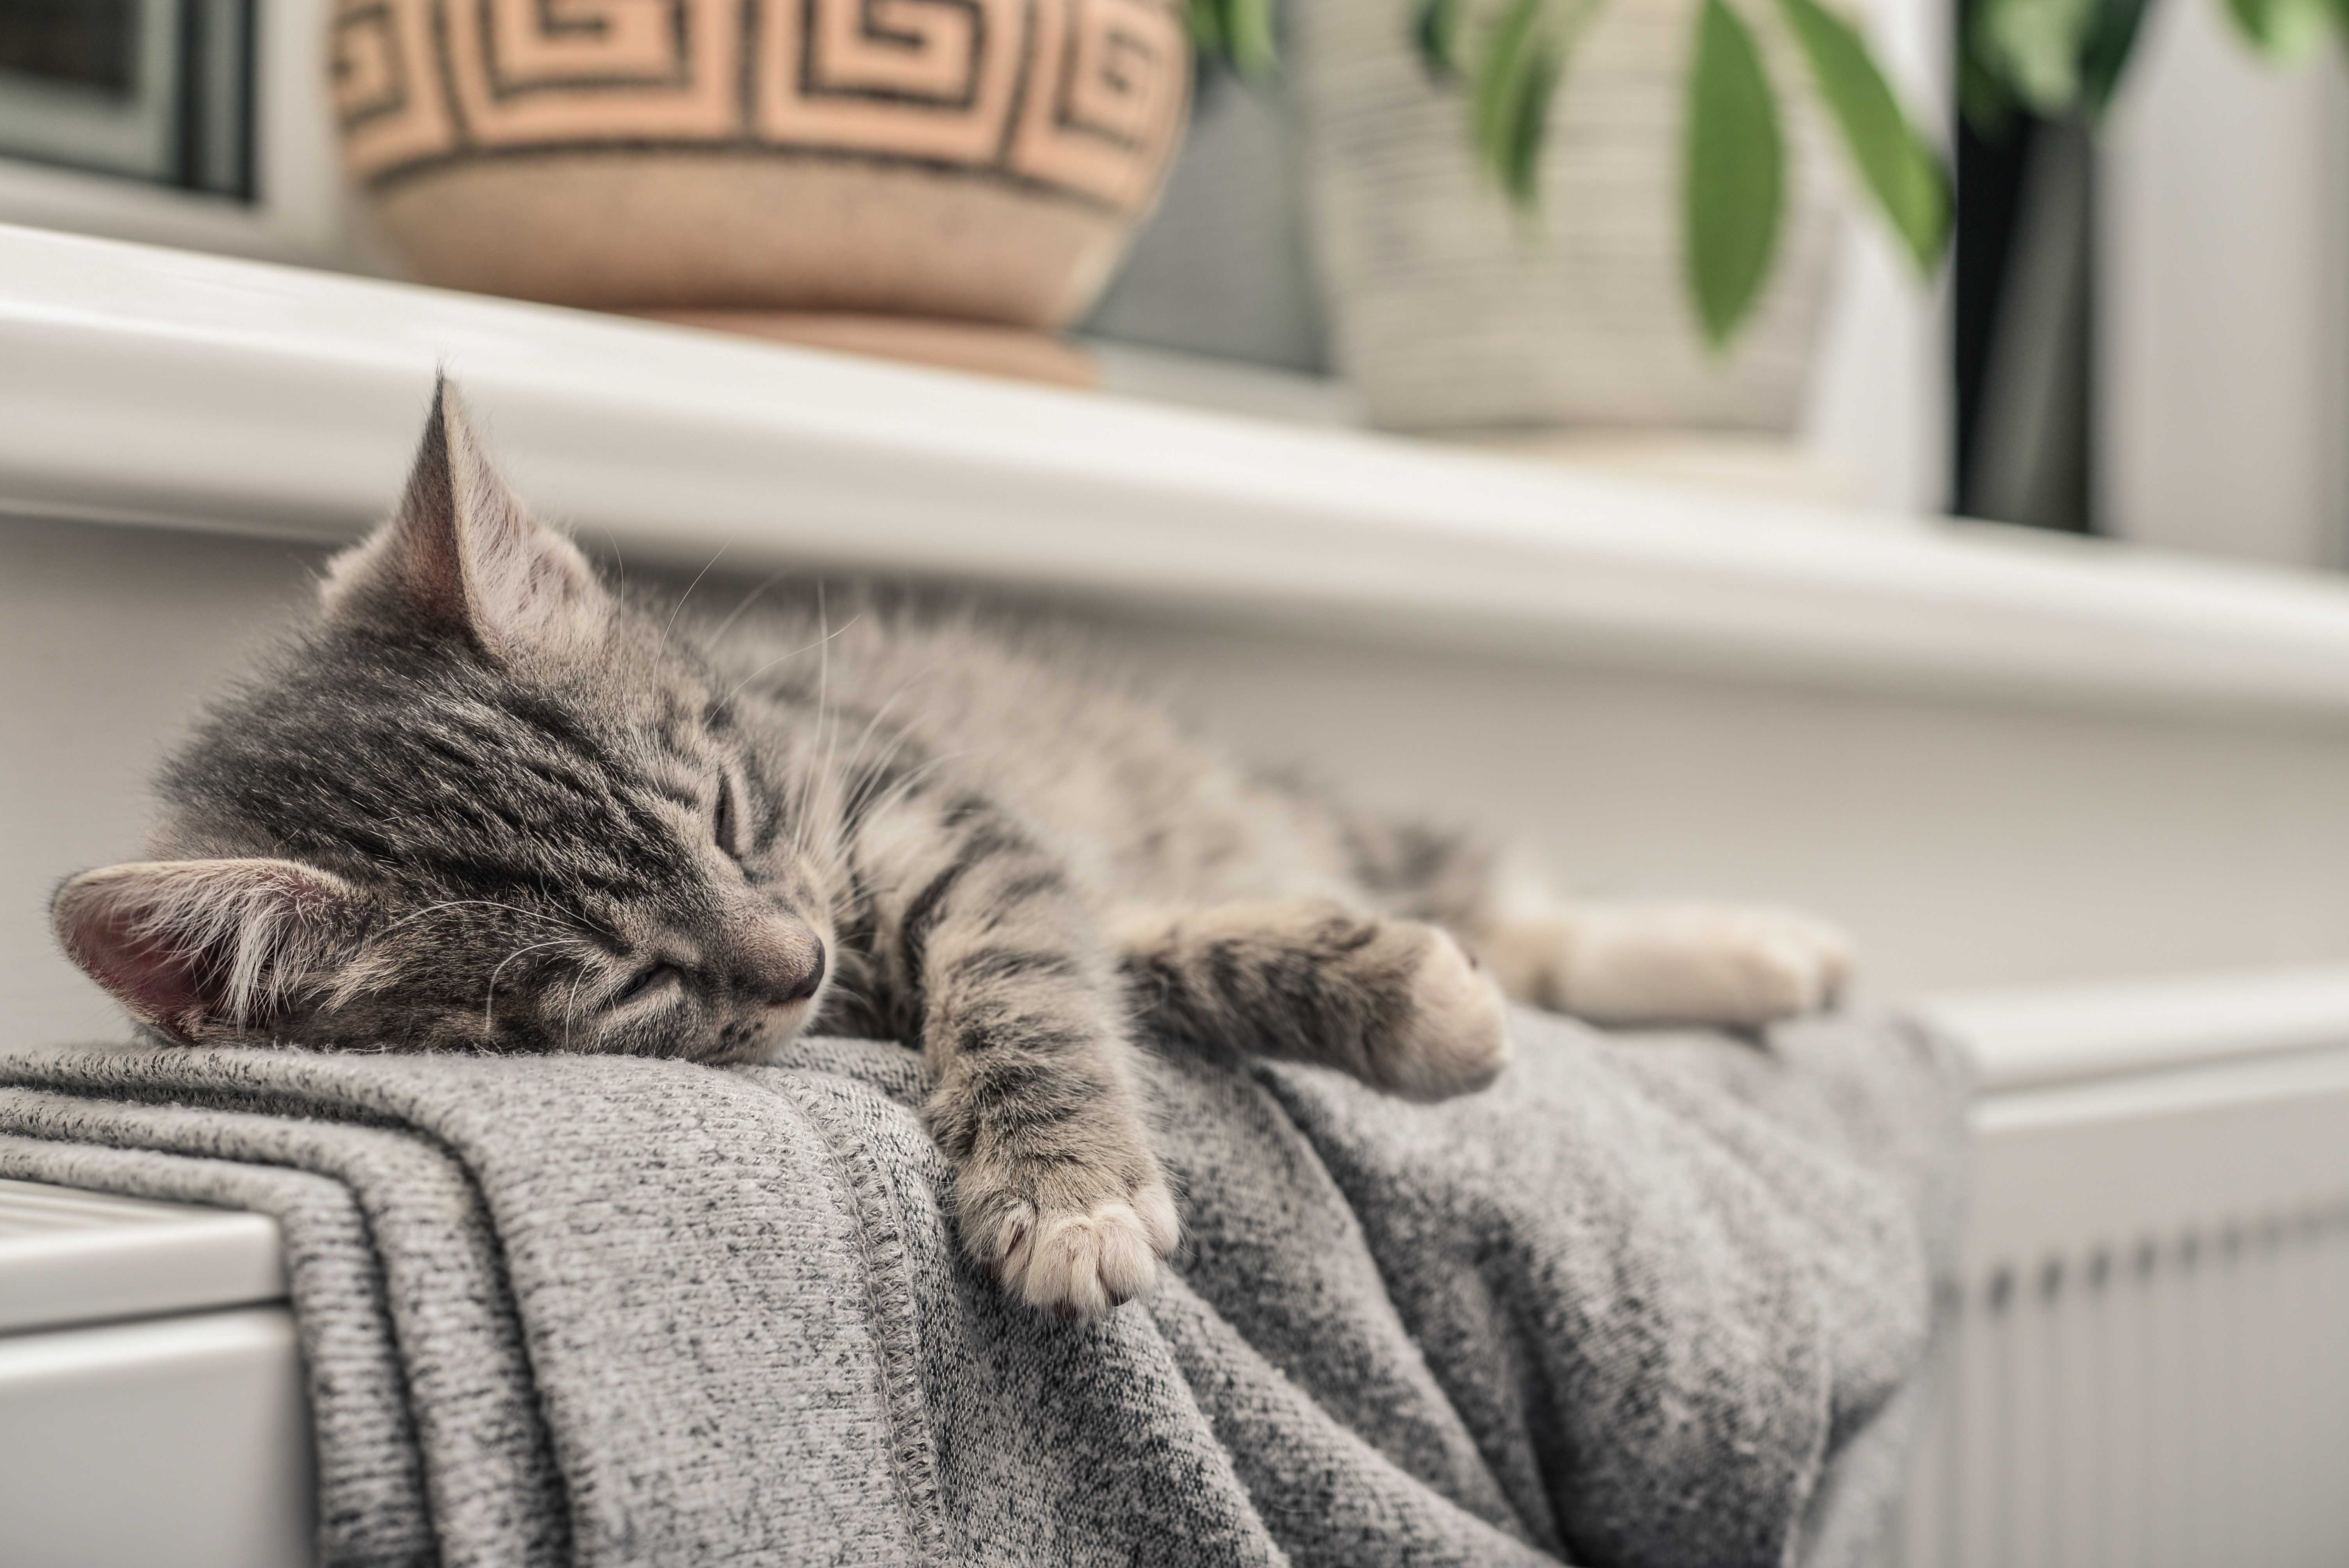 Kitten sleeping on a warm radiator